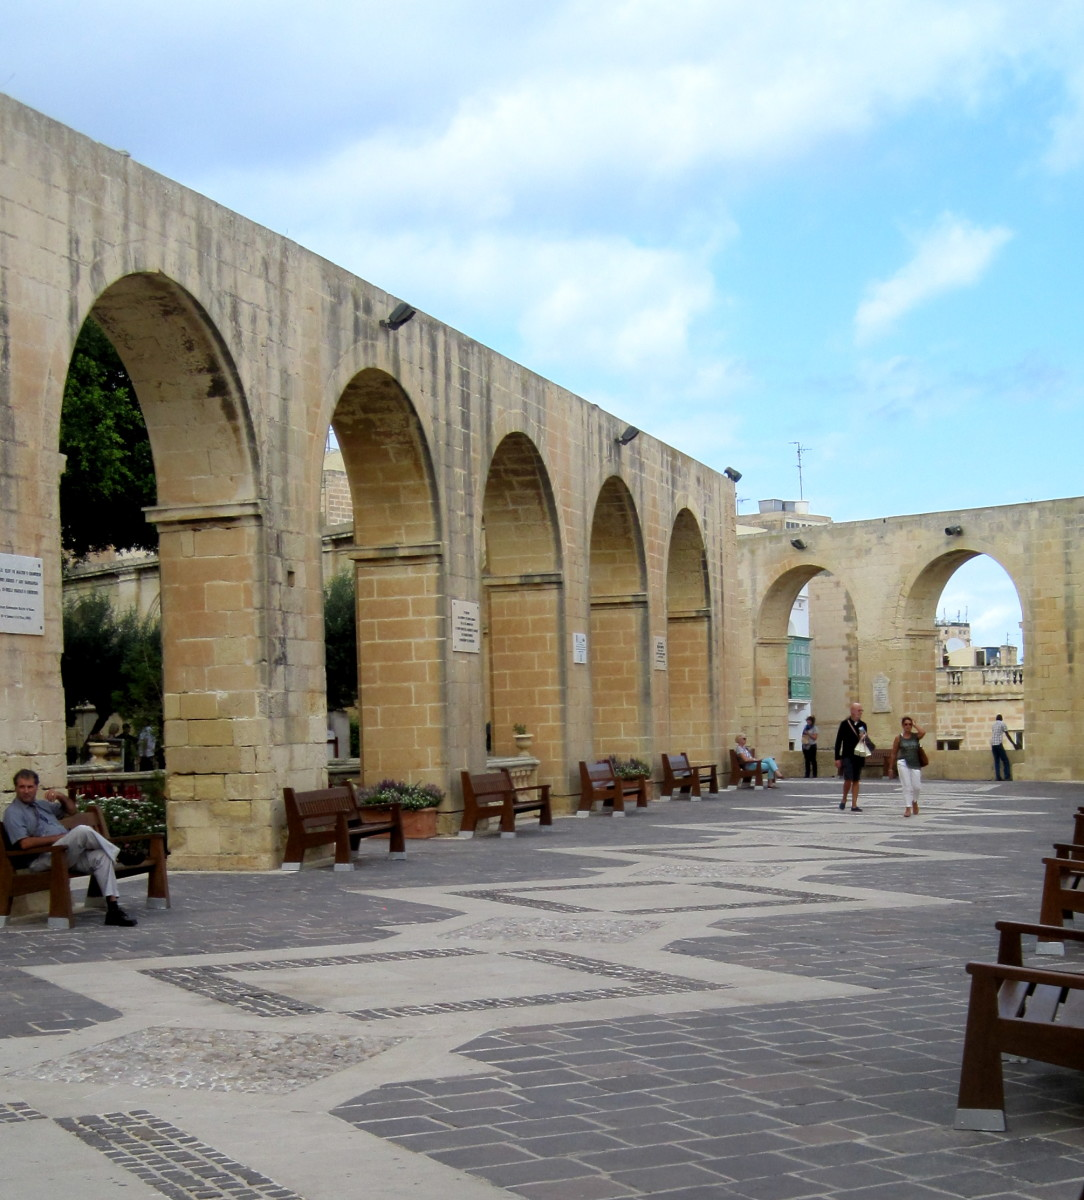 The Colonnade of the Upper Barrakka Gardens